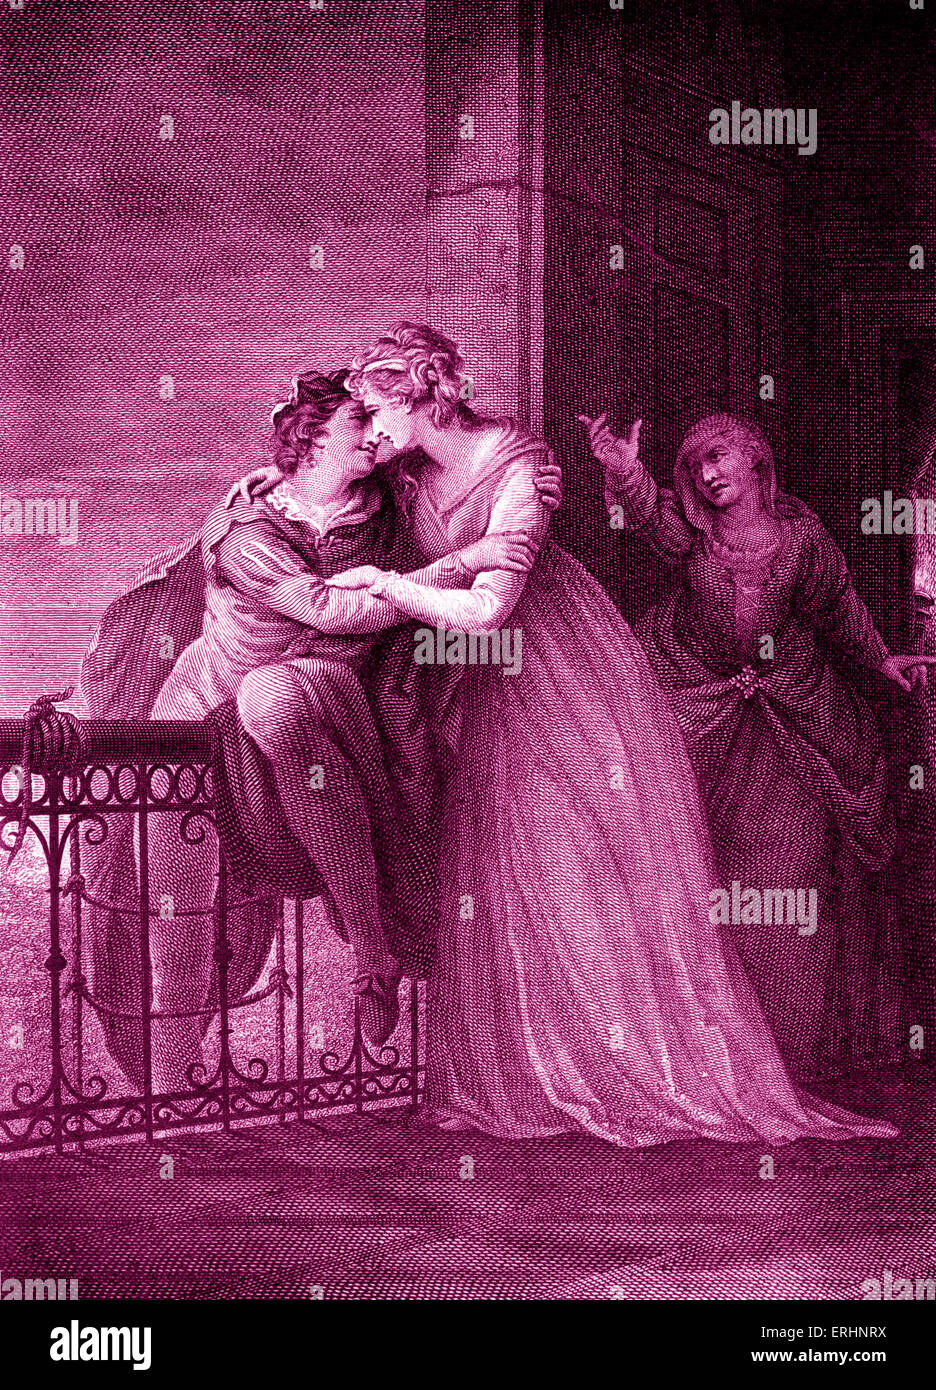 a transformation of juliet in romeo and juliet by william shakespeare Read online or download for free graded reader ebook and audiobook romeo and juliet by william shakespeare of elementary level you can download in epub, mobi, fb2 there has never been a more tragic story than this one of romeo and juliet it was a love at first sight, boundless and everlasting.